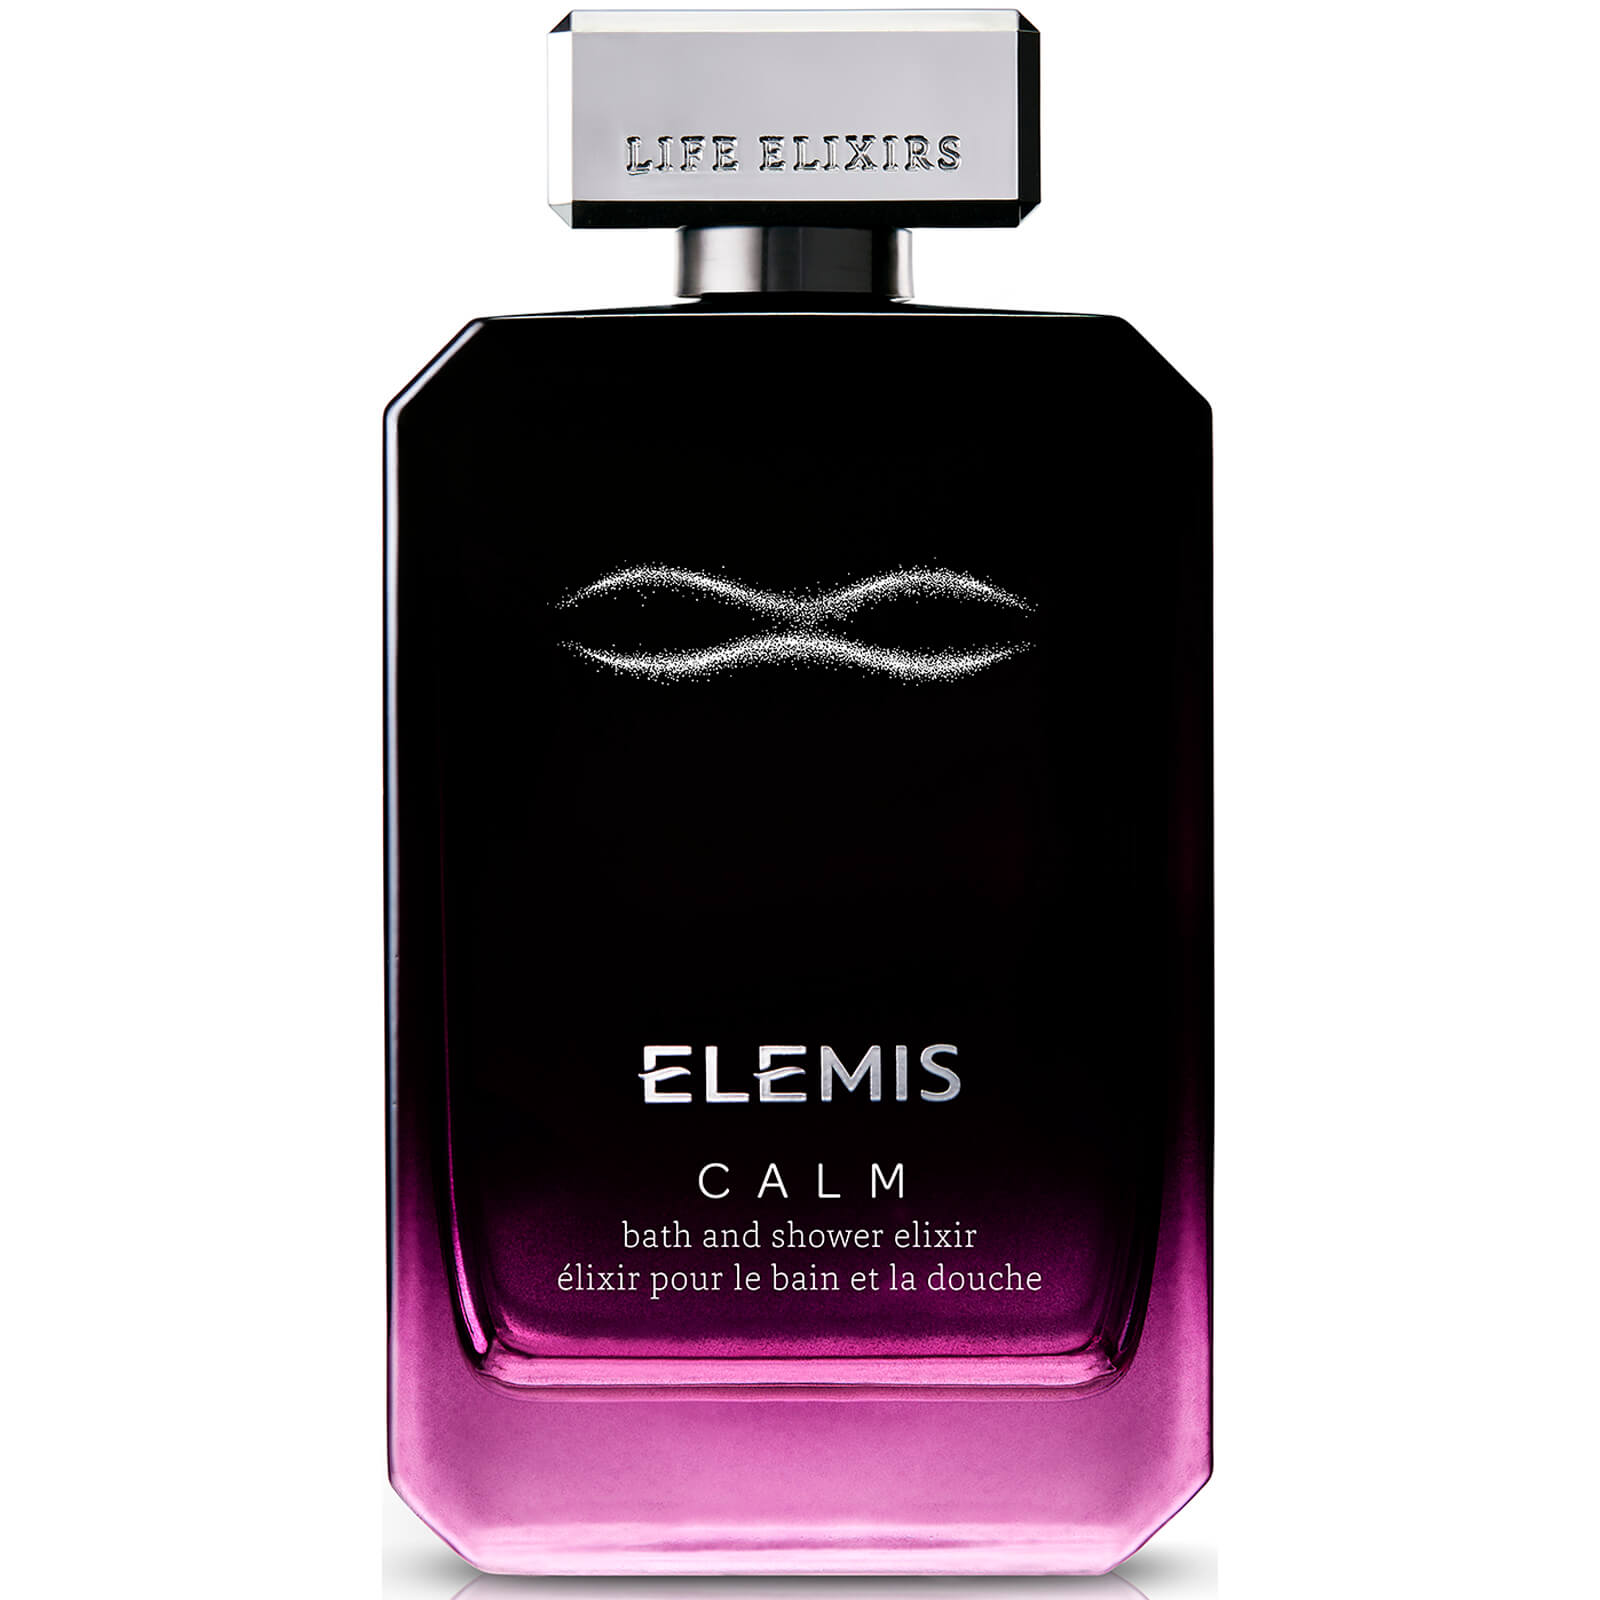 Elemis Life Elixirs Calm Bath and Shower Elixir 100ml